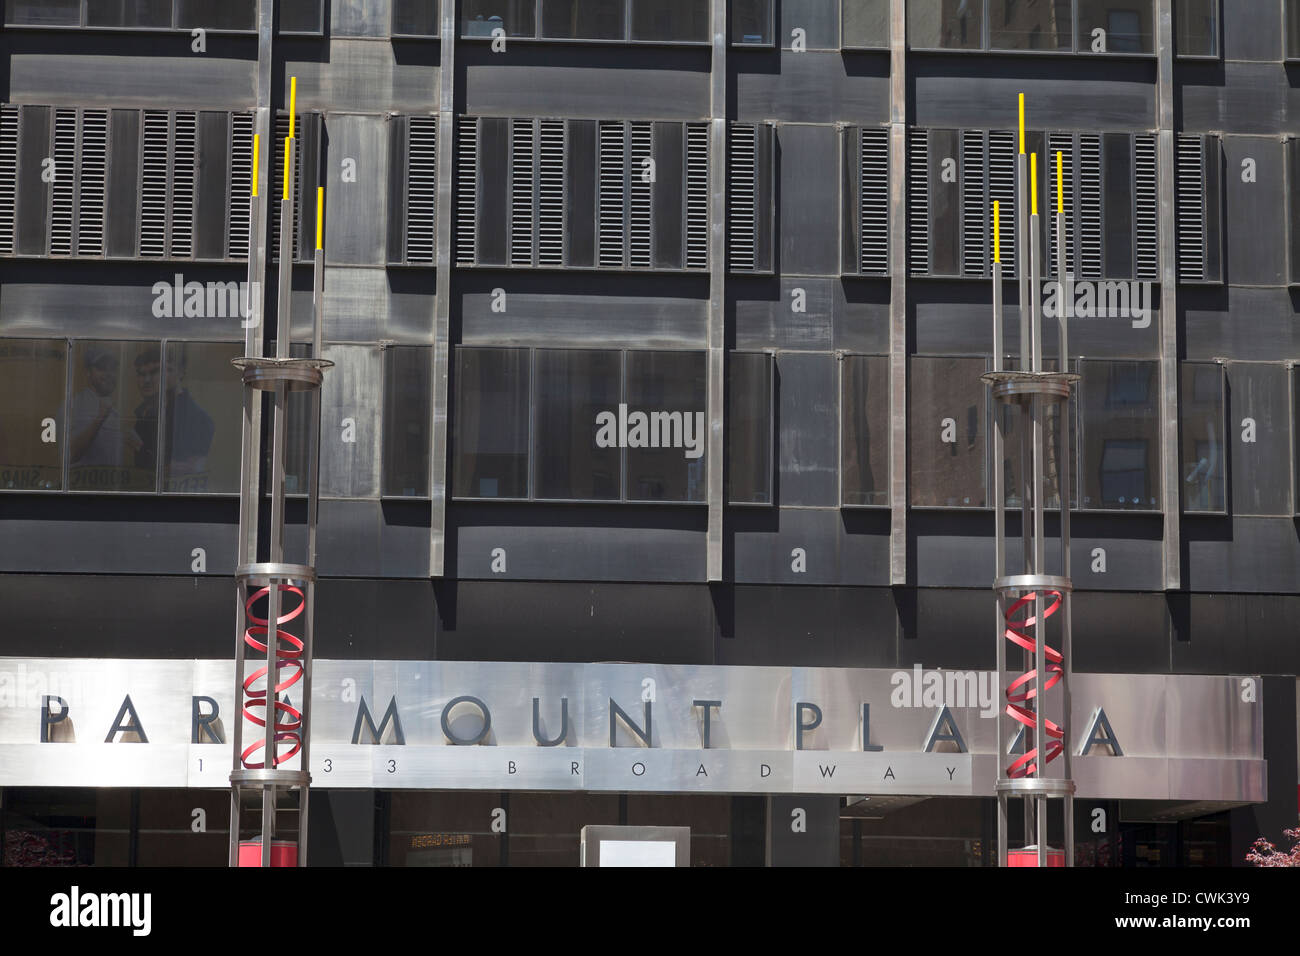 Front facade exterior of Paramount Plaza in Manhattan, New York City, NYC, NY, USA, America - Stock Image